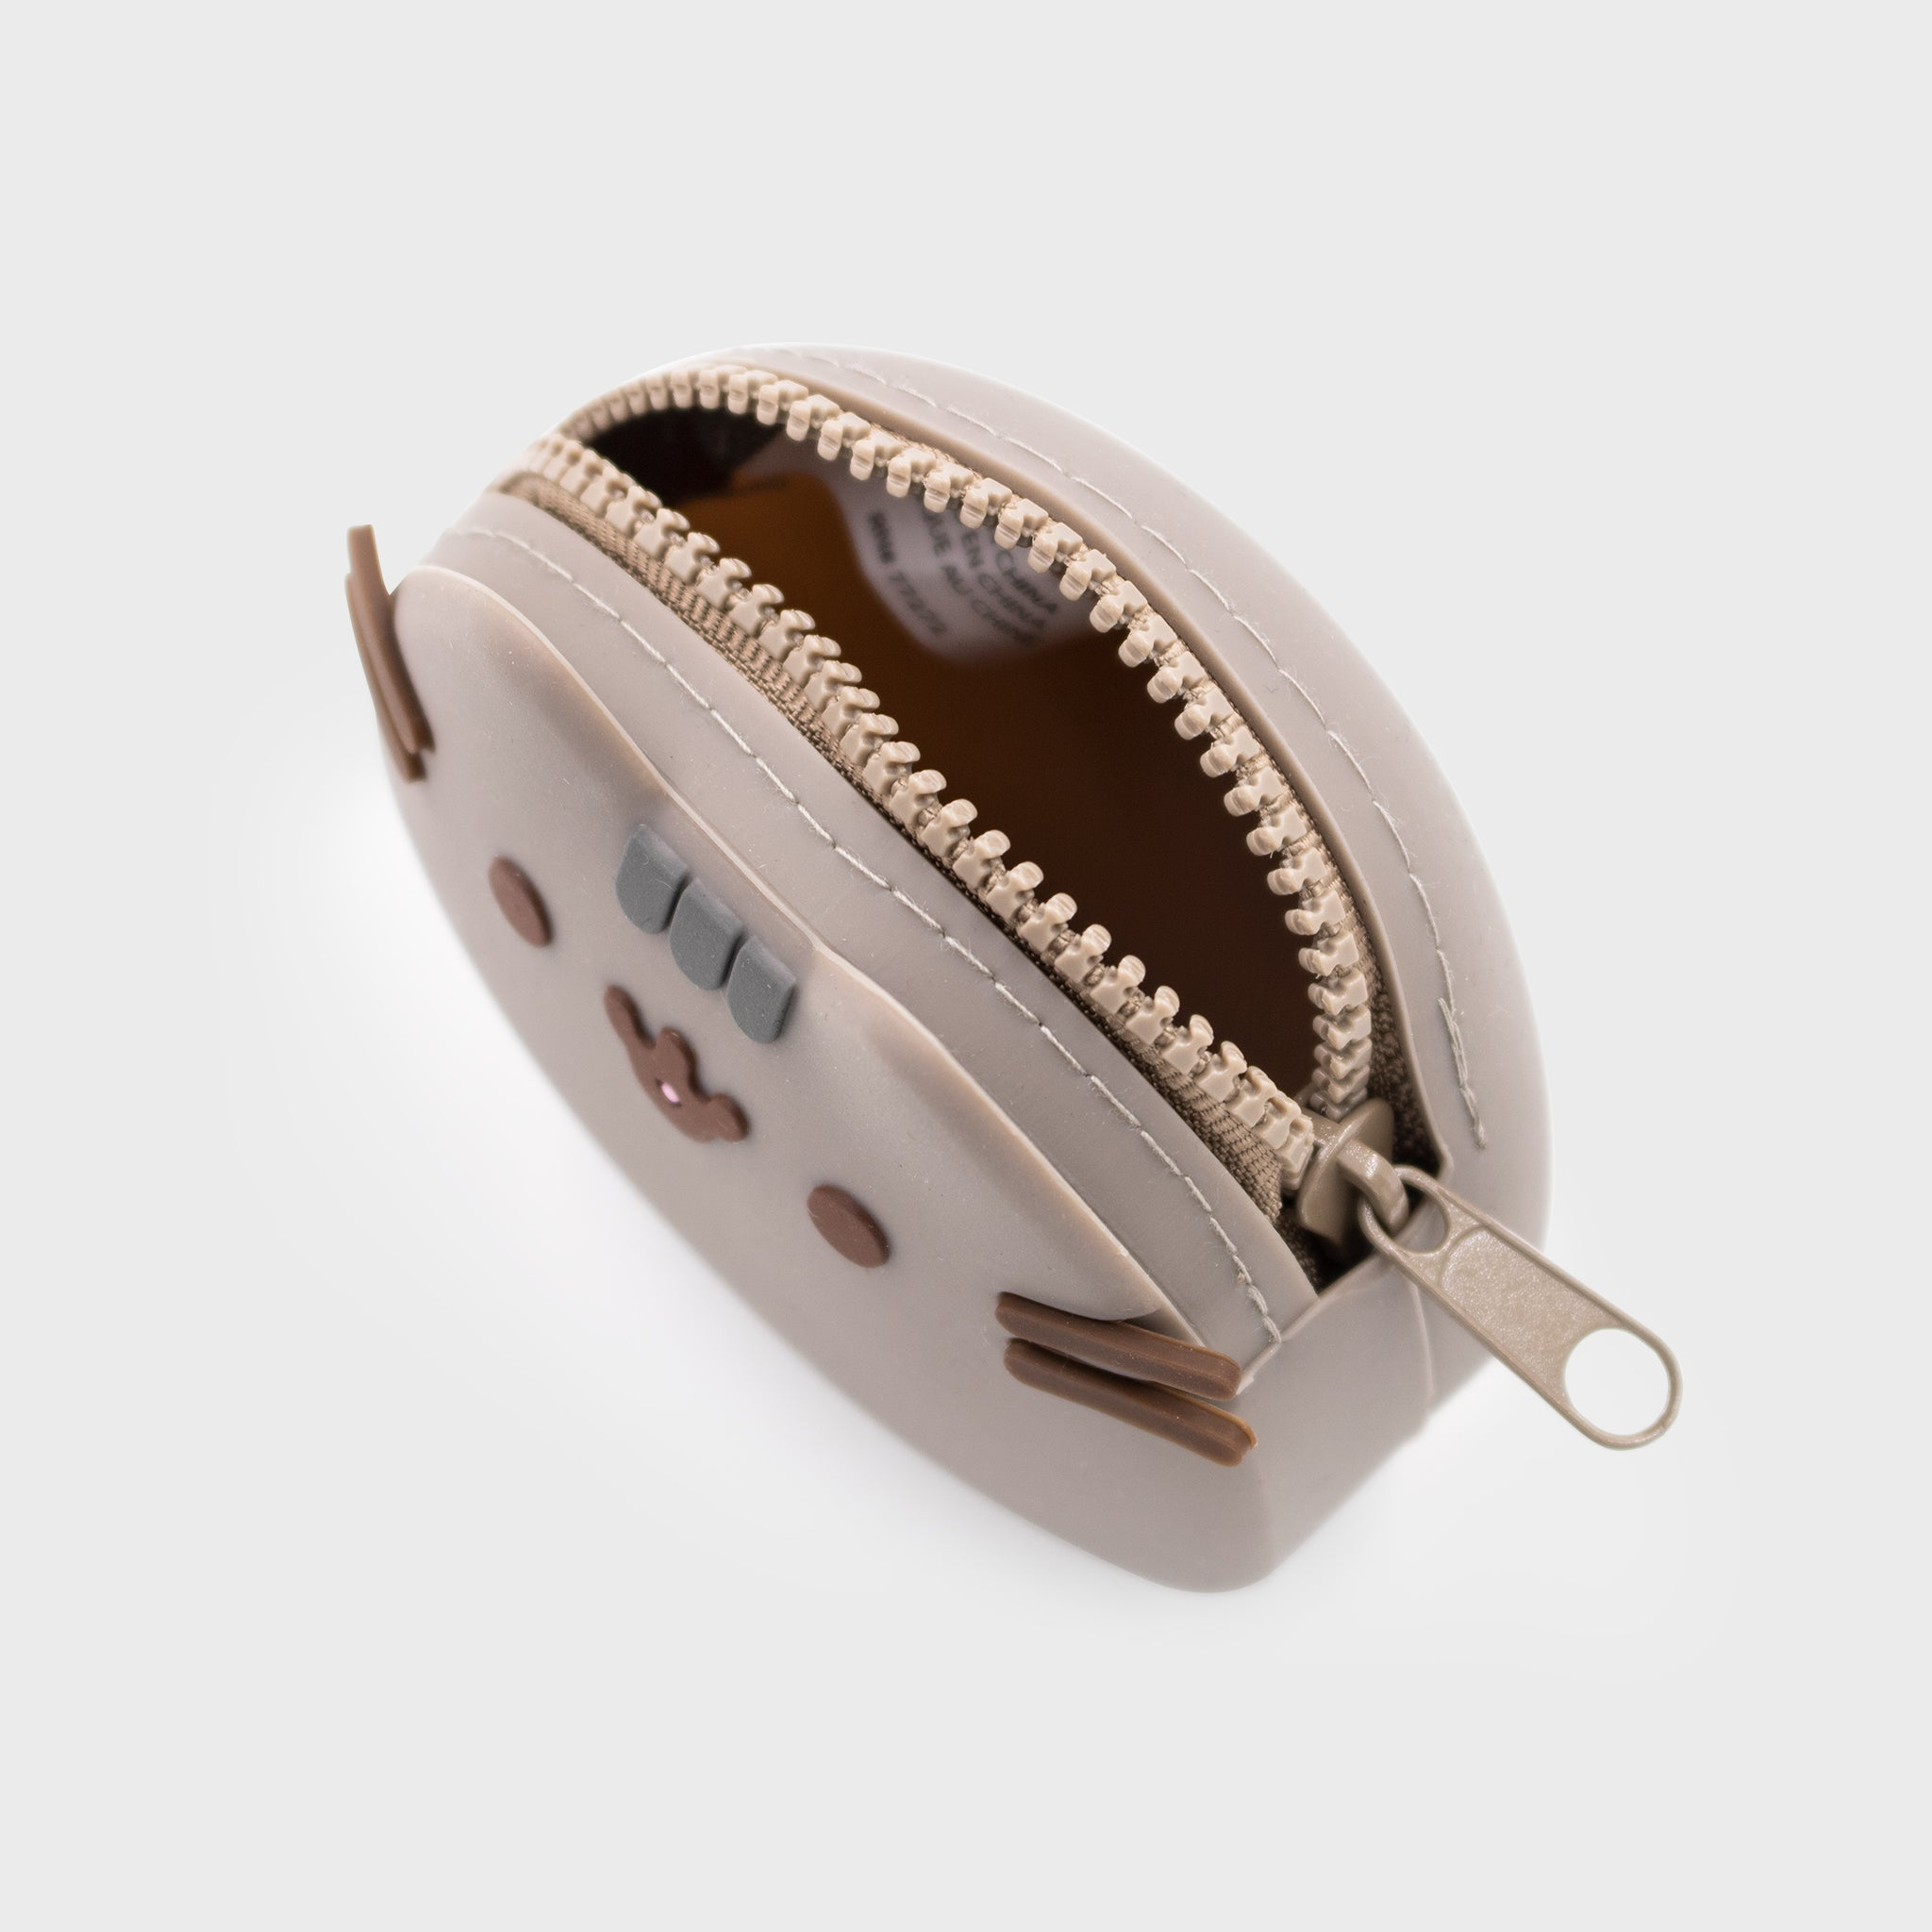 Pusheen purse coin mini small cute cat culturefly 3